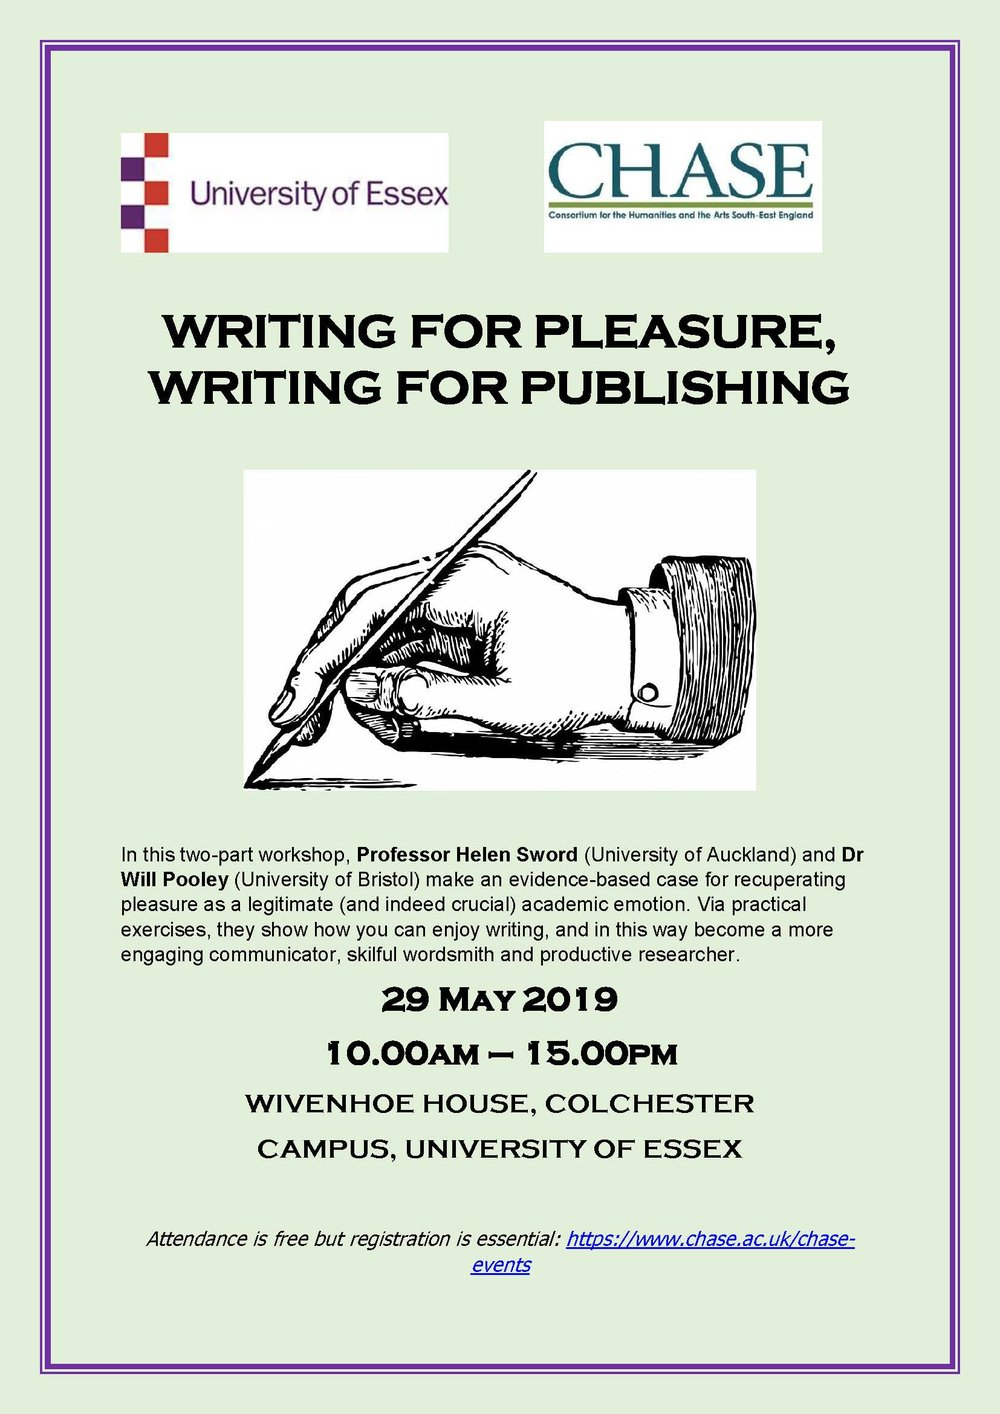 Writing for Pleasure Poster